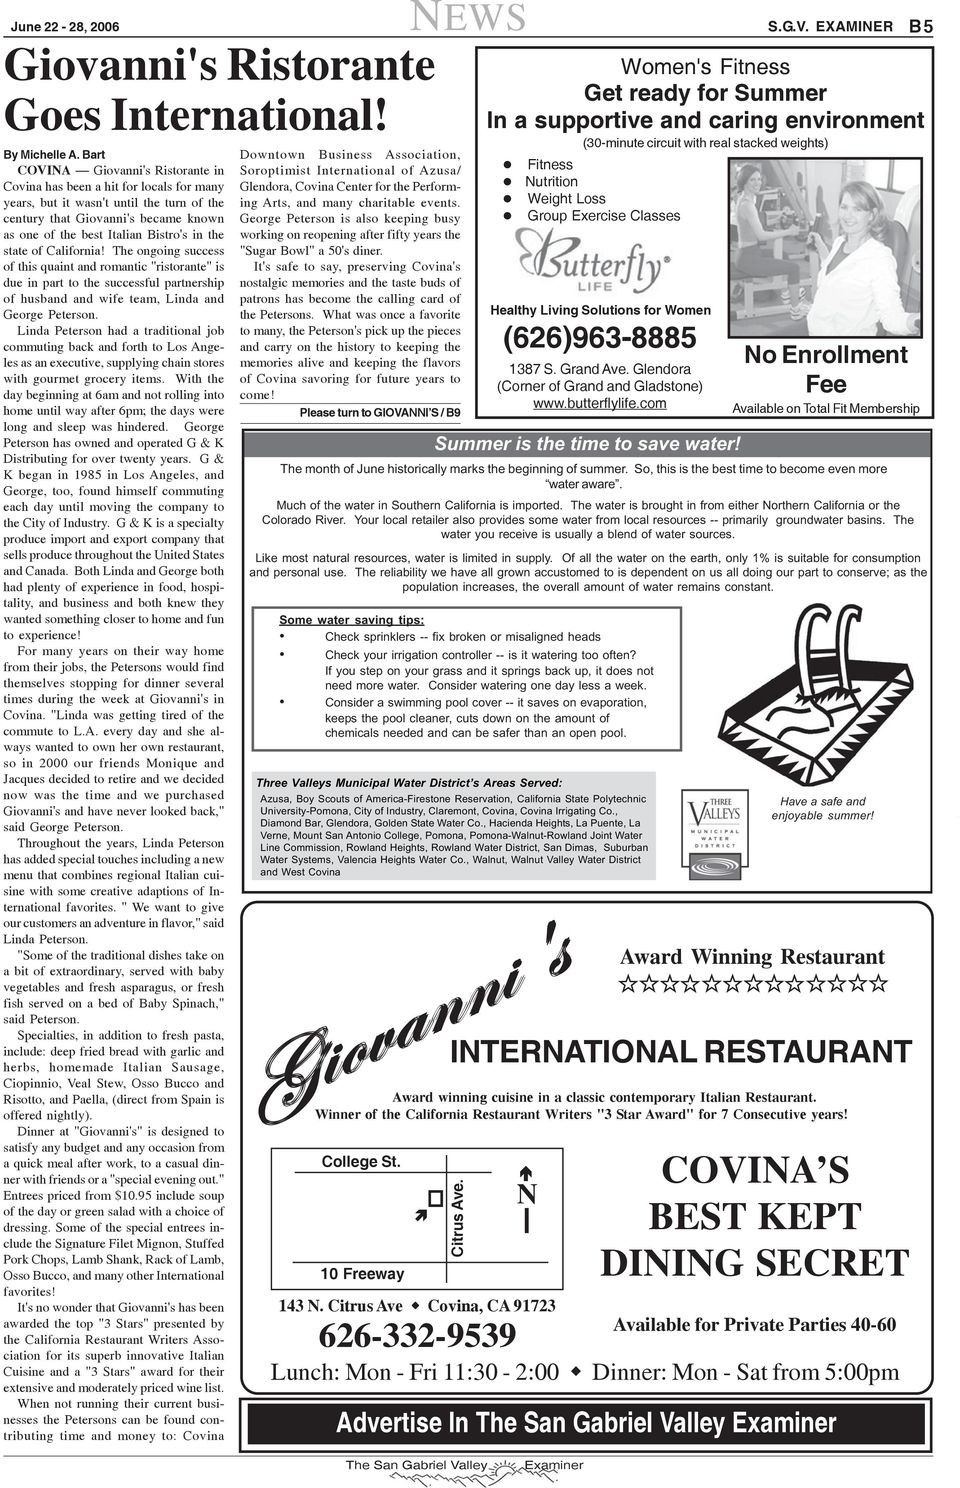 "the state of California! The ongoing success of this quaint and romantic ""ristorante"" is due in part to the successful partnership of husband and wife team, Linda and George Peterson."